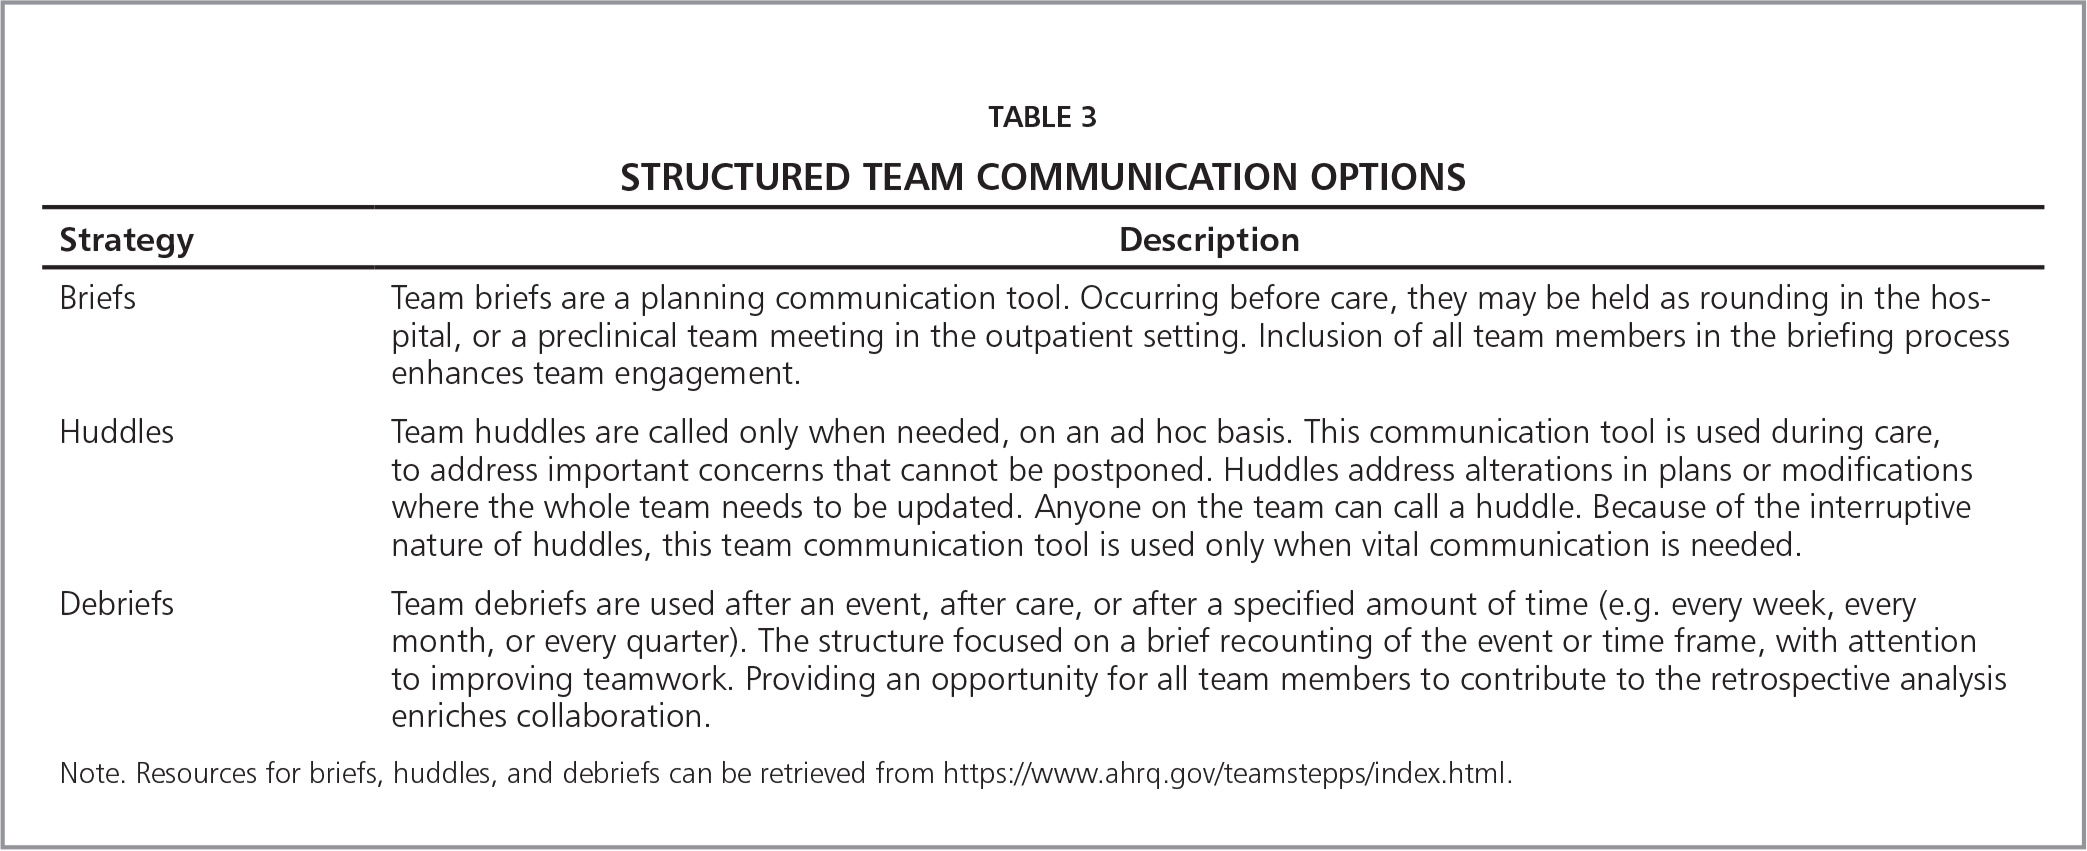 Structured Team Communication Options